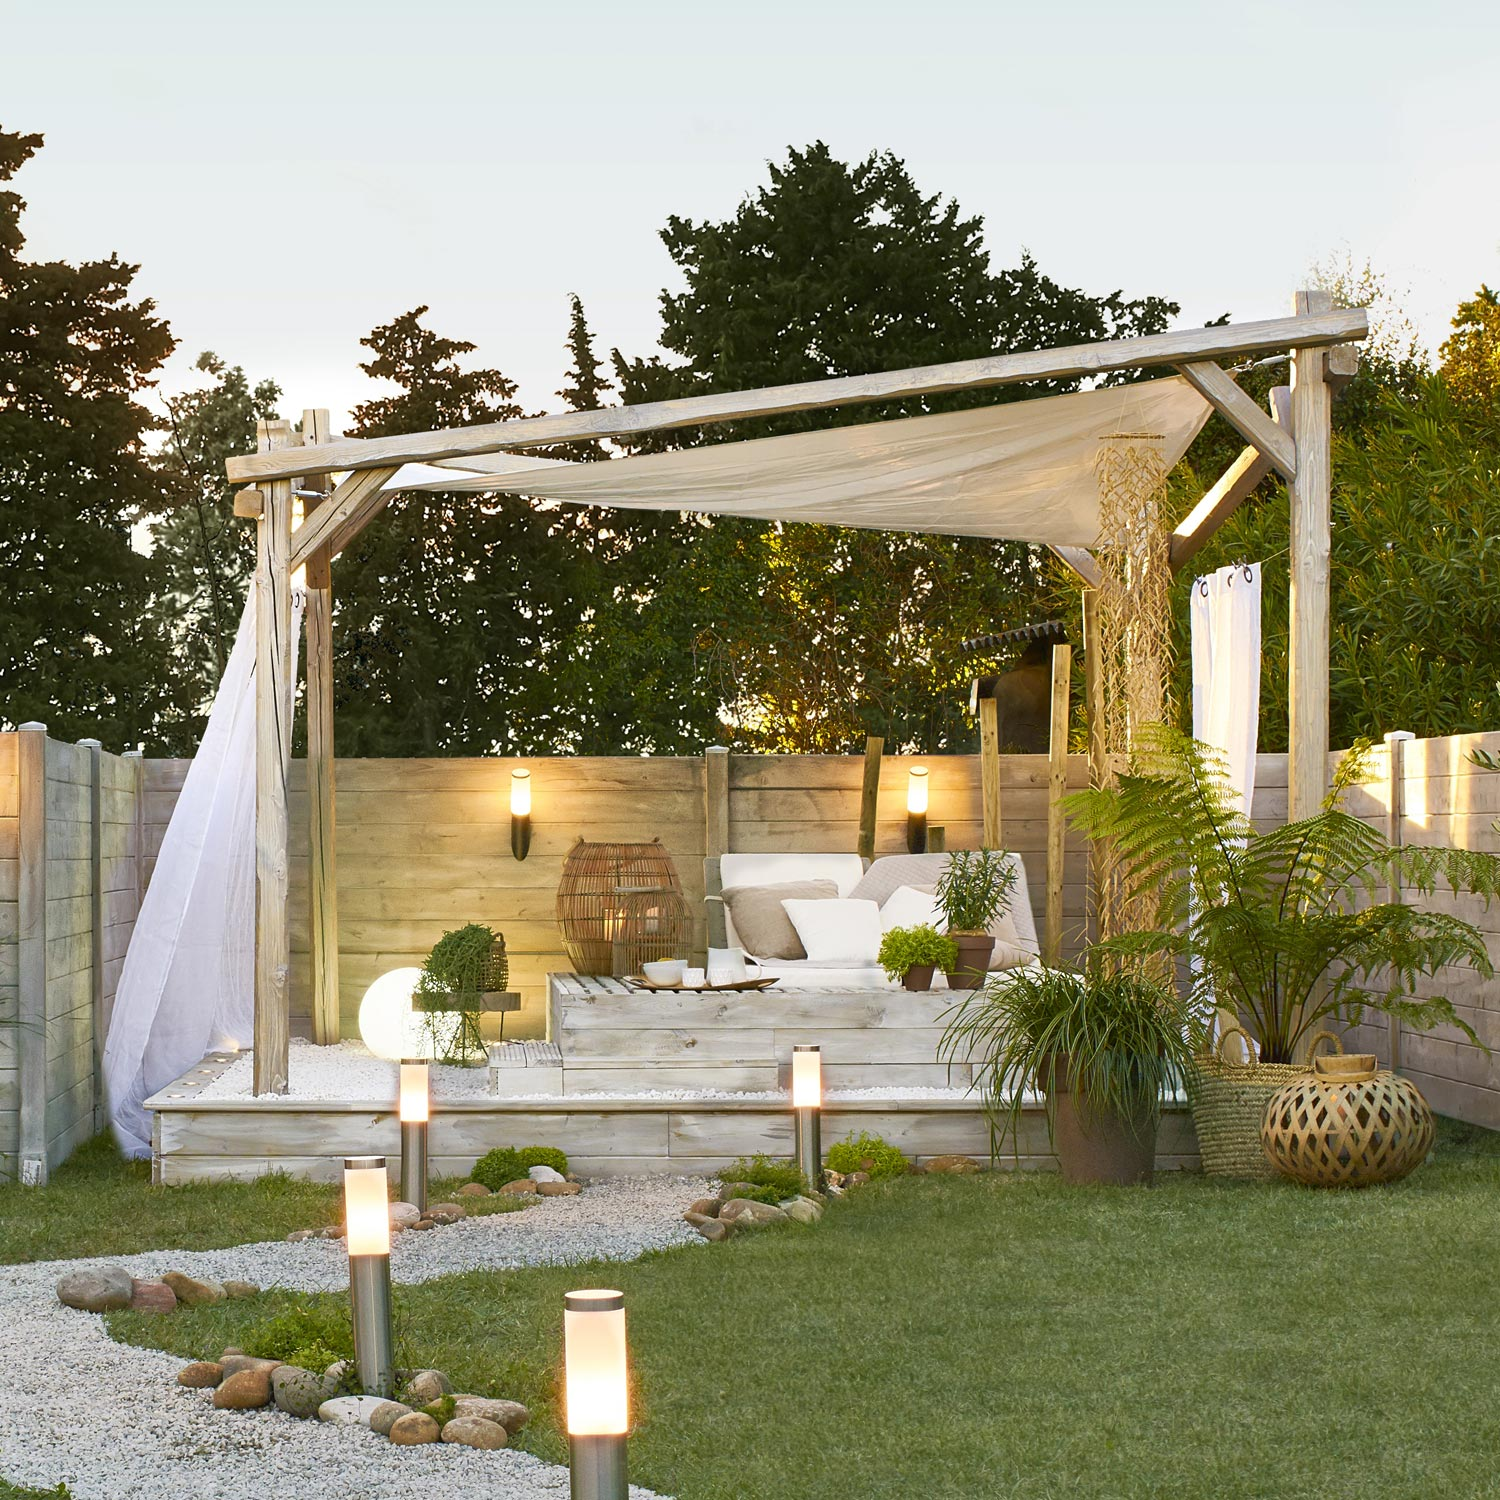 construire une pergola bois fashion designs. Black Bedroom Furniture Sets. Home Design Ideas